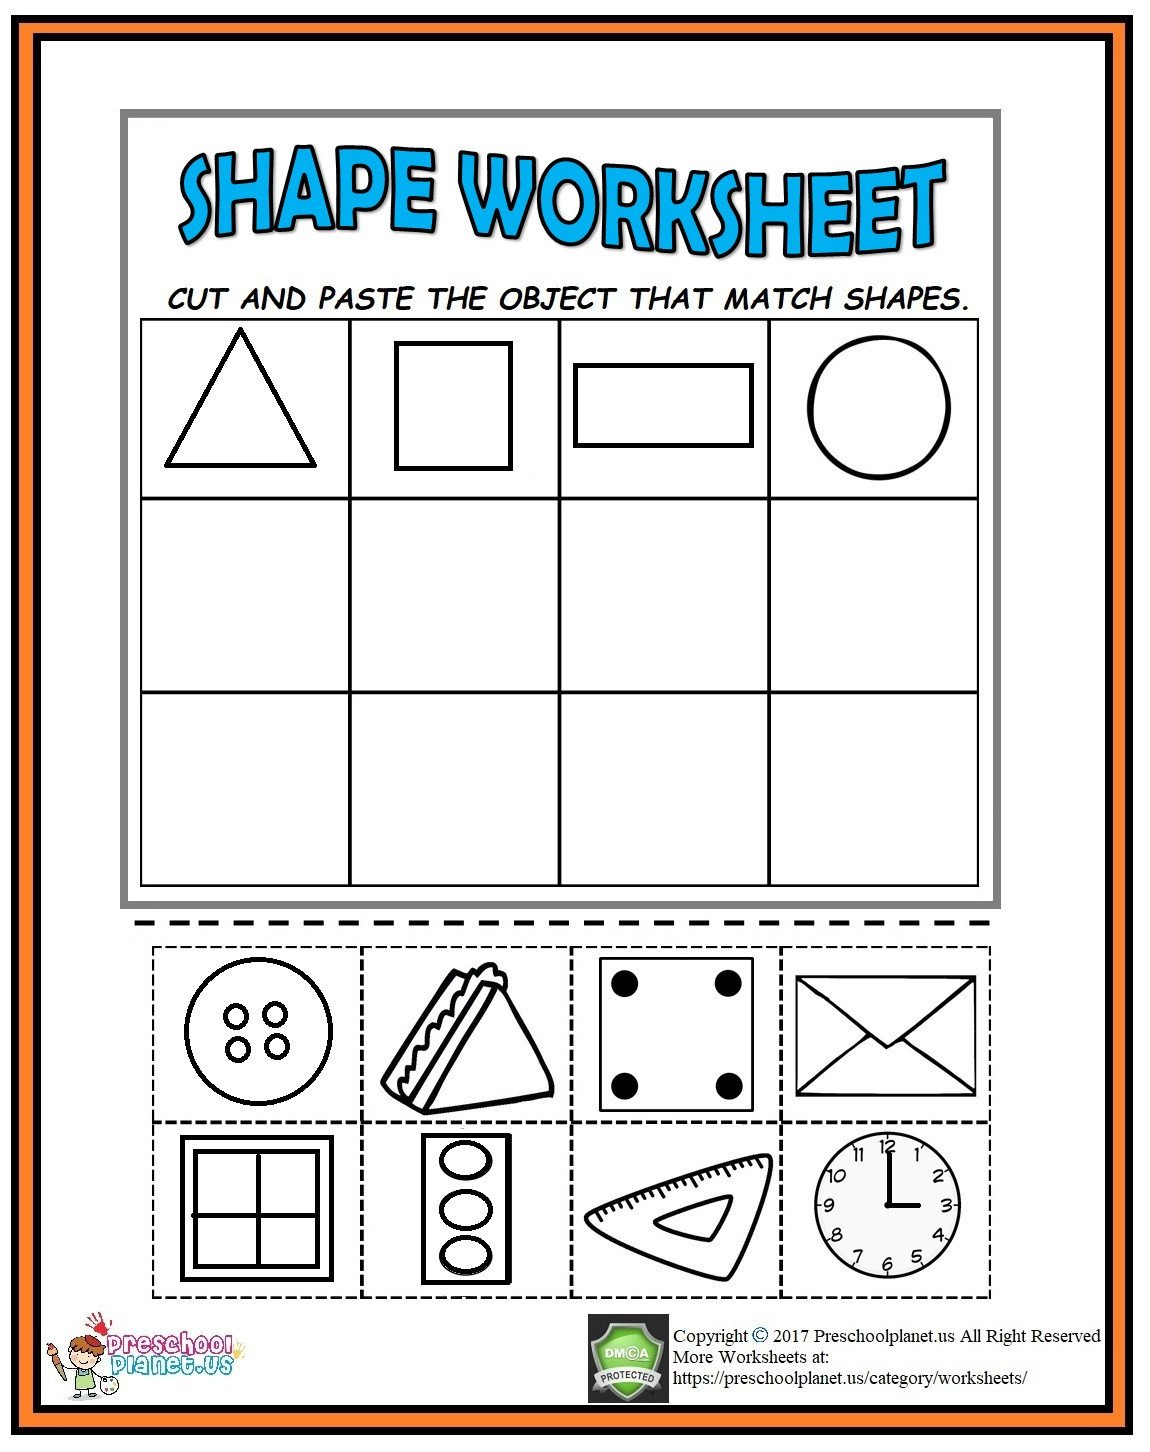 Cut and Paste Worksheets Cut and Paste Shape Worksheet – Preschoolplanet